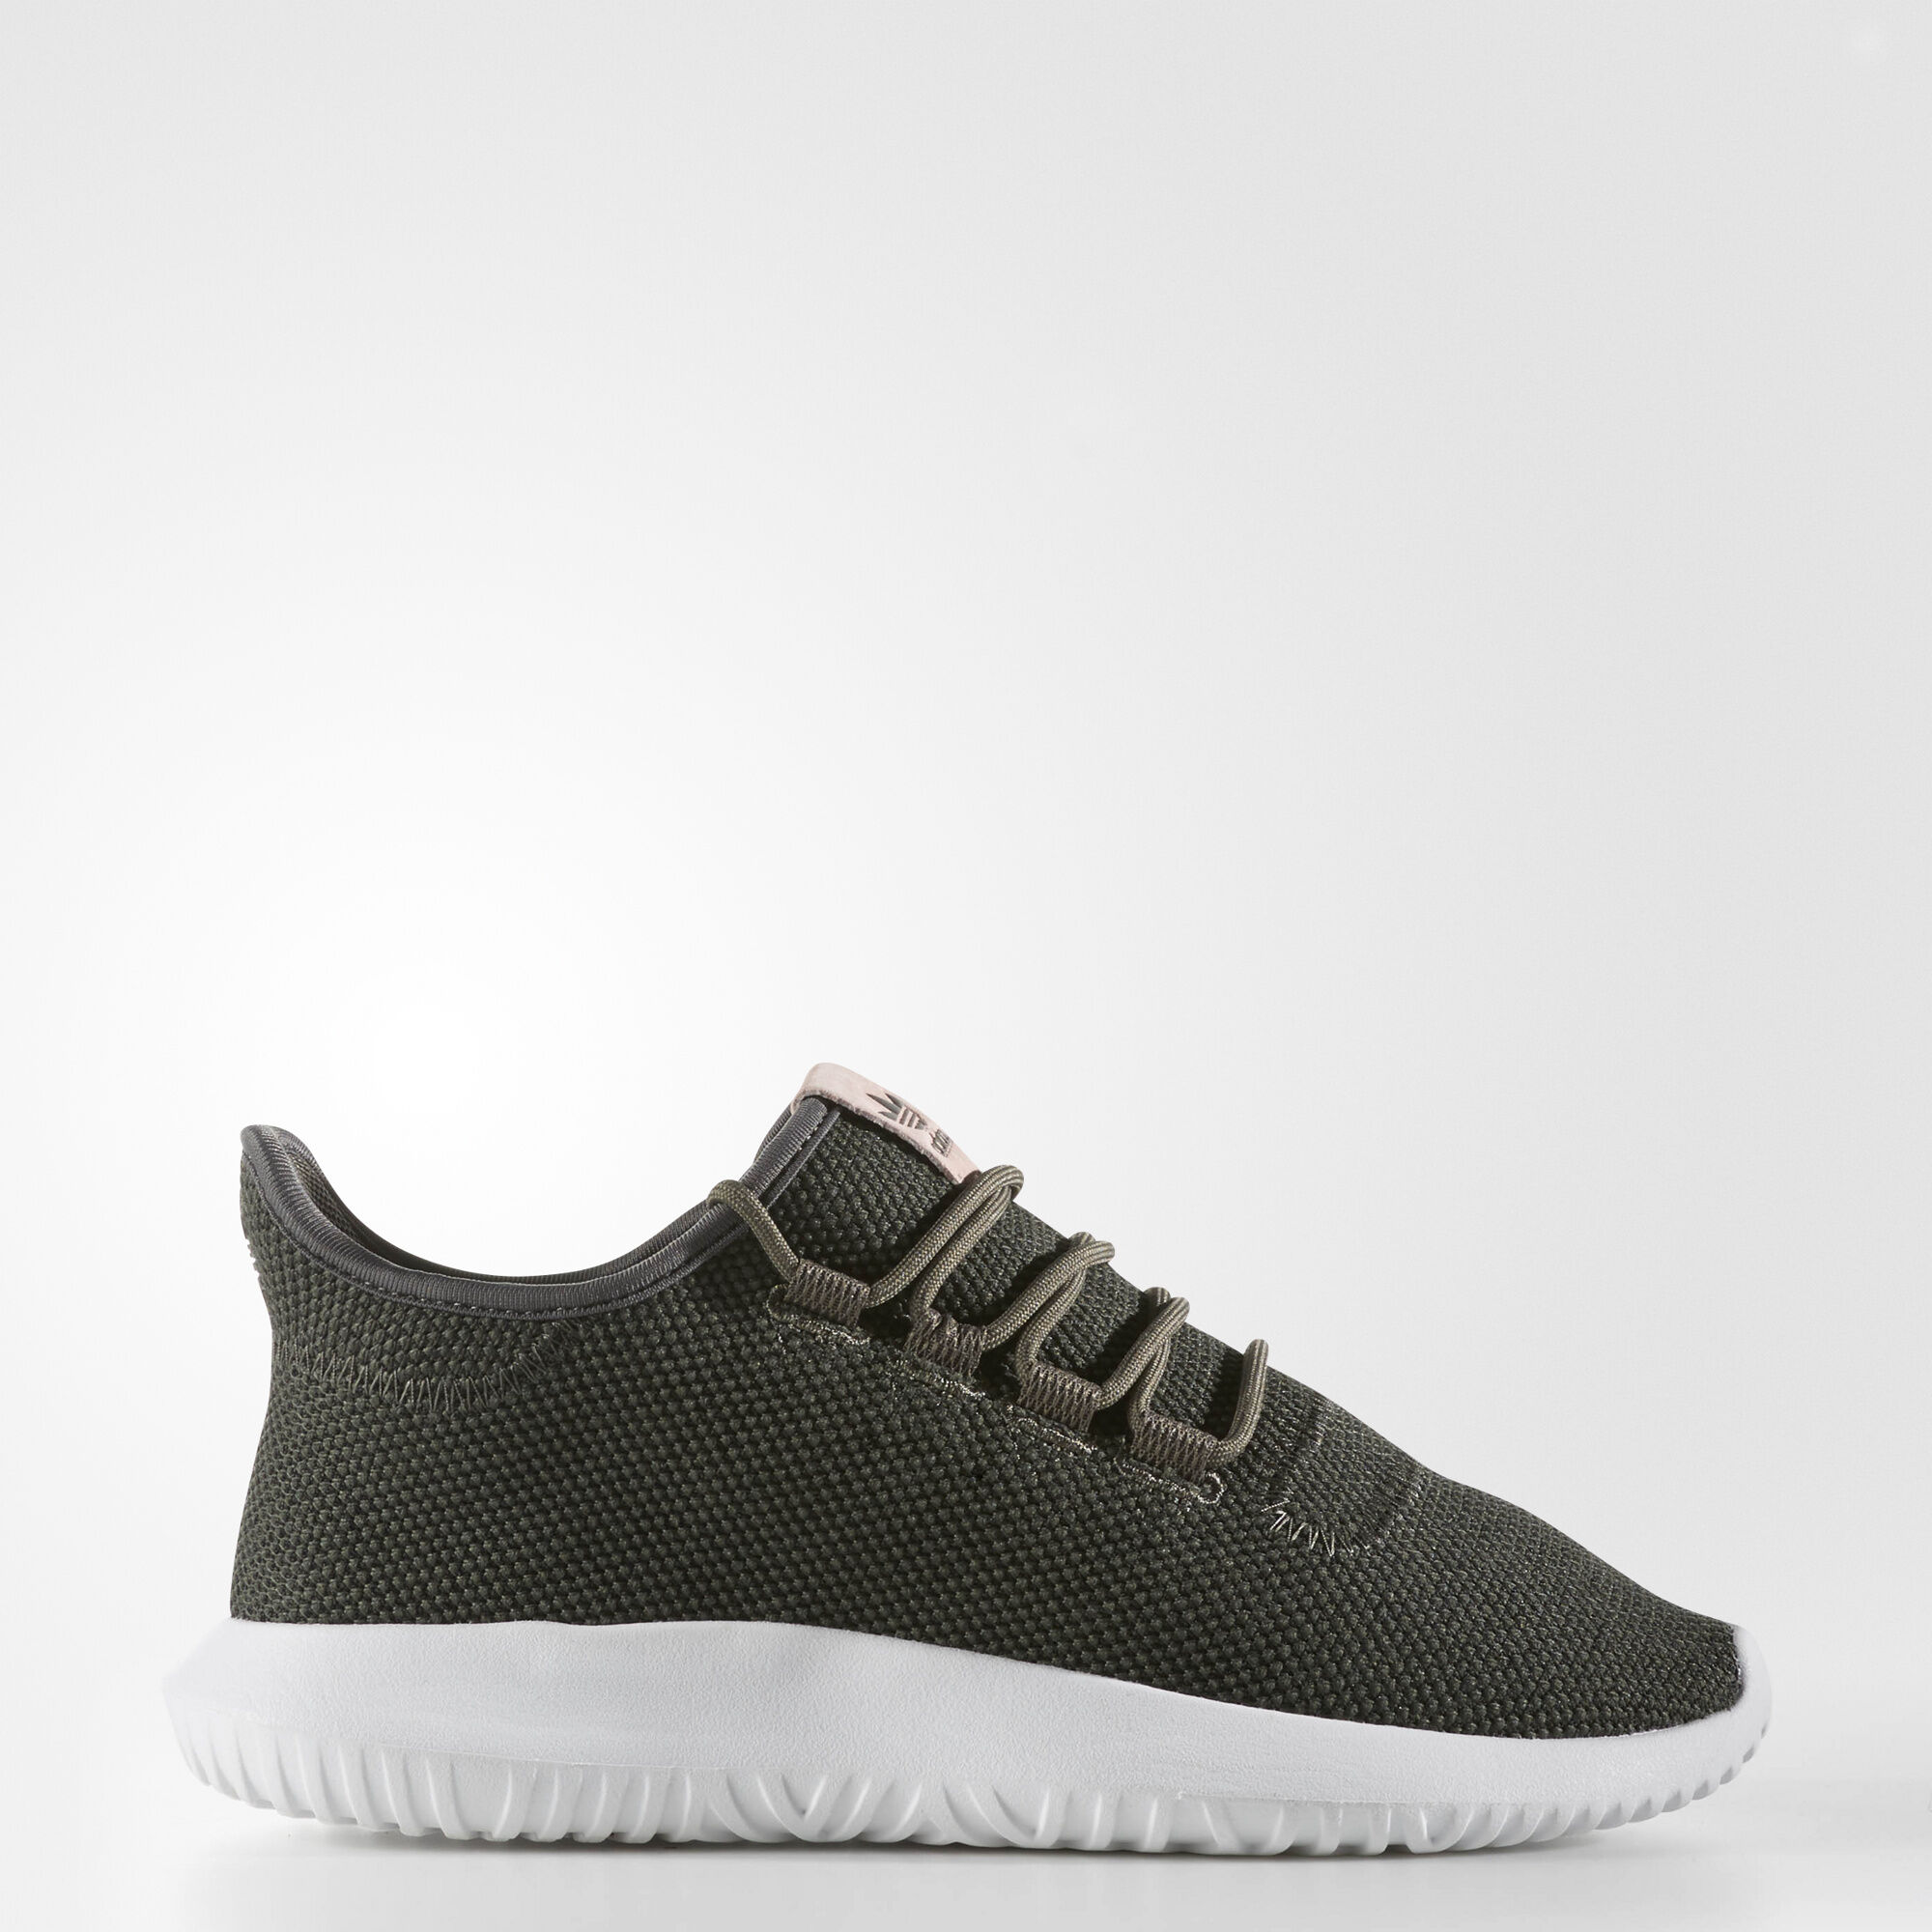 Adidas Tubular White Grey